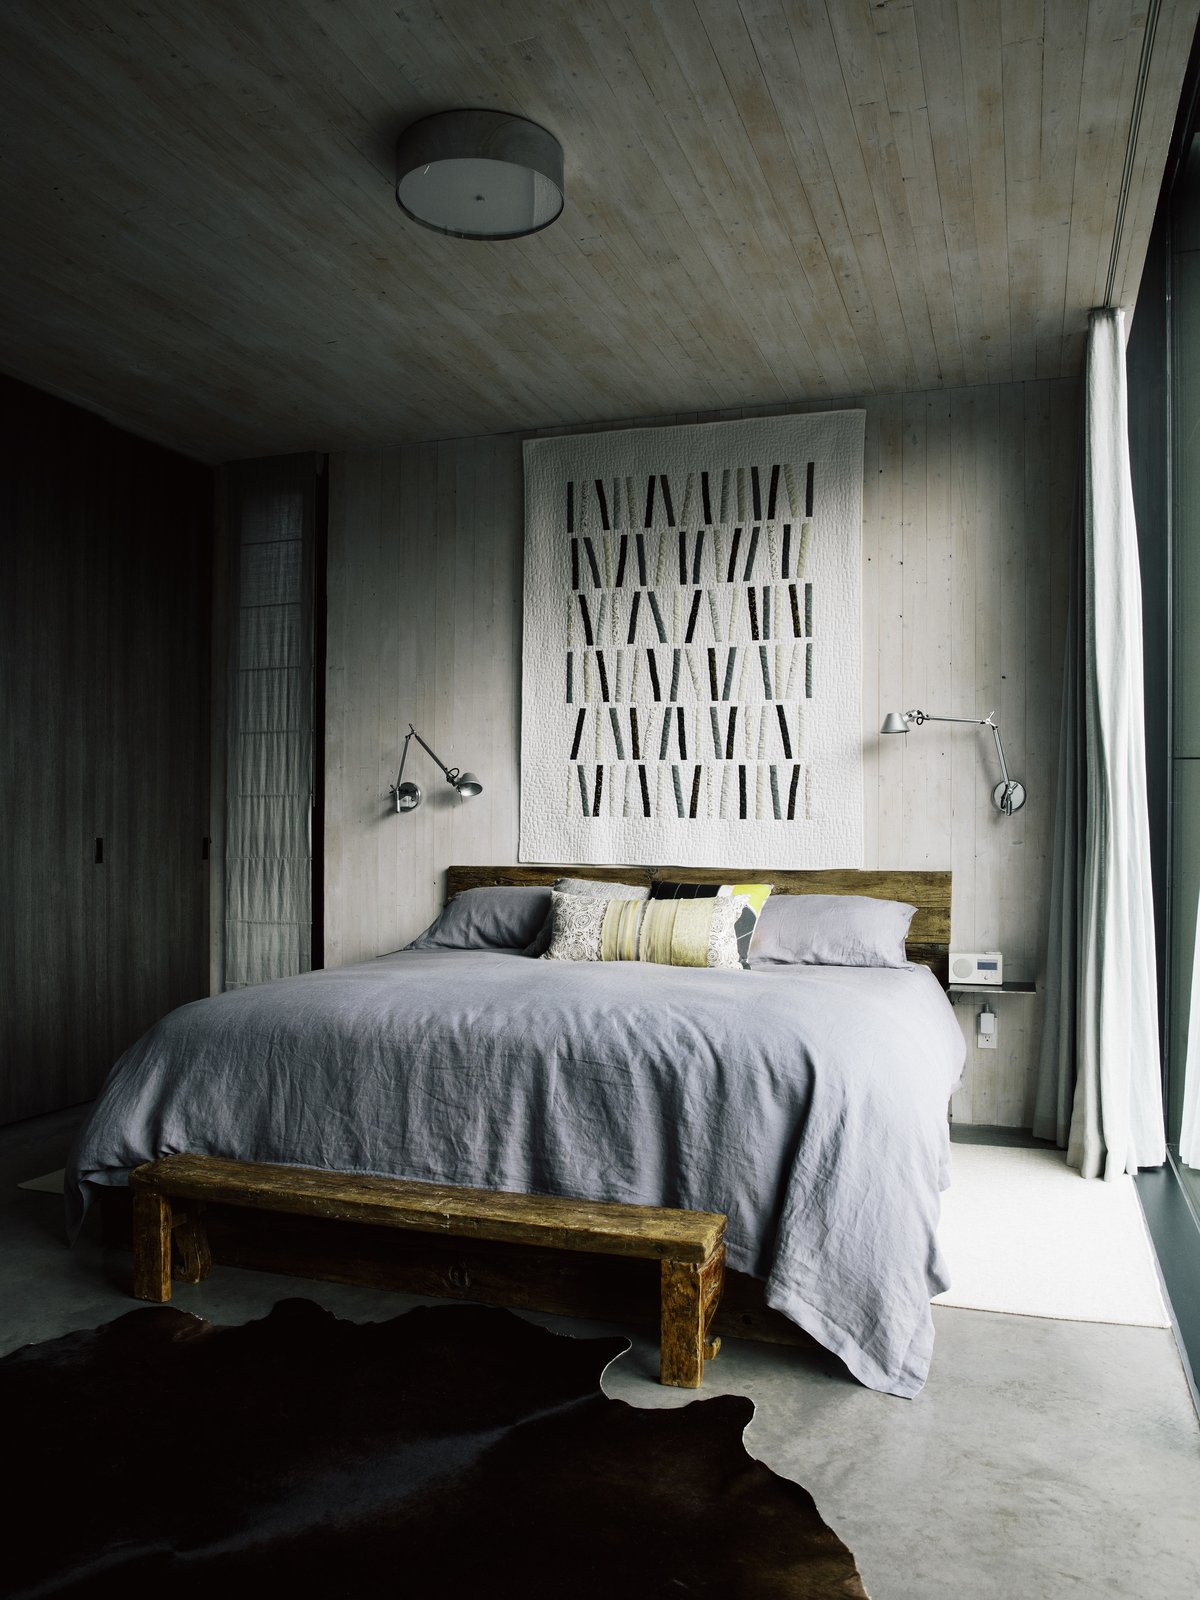 Bedroom, Wall, Concrete, Bed, and Ceiling Karen and Stephen made their bed using wood from an old weathered deck. A quilt by Karen hangs above it. The wall lamps are by Artemide, the bedcover is from North Shore Linens, and the antique bench is from China.  Best Bedroom Concrete Bed Photos from A Vancouver House Connects a Family